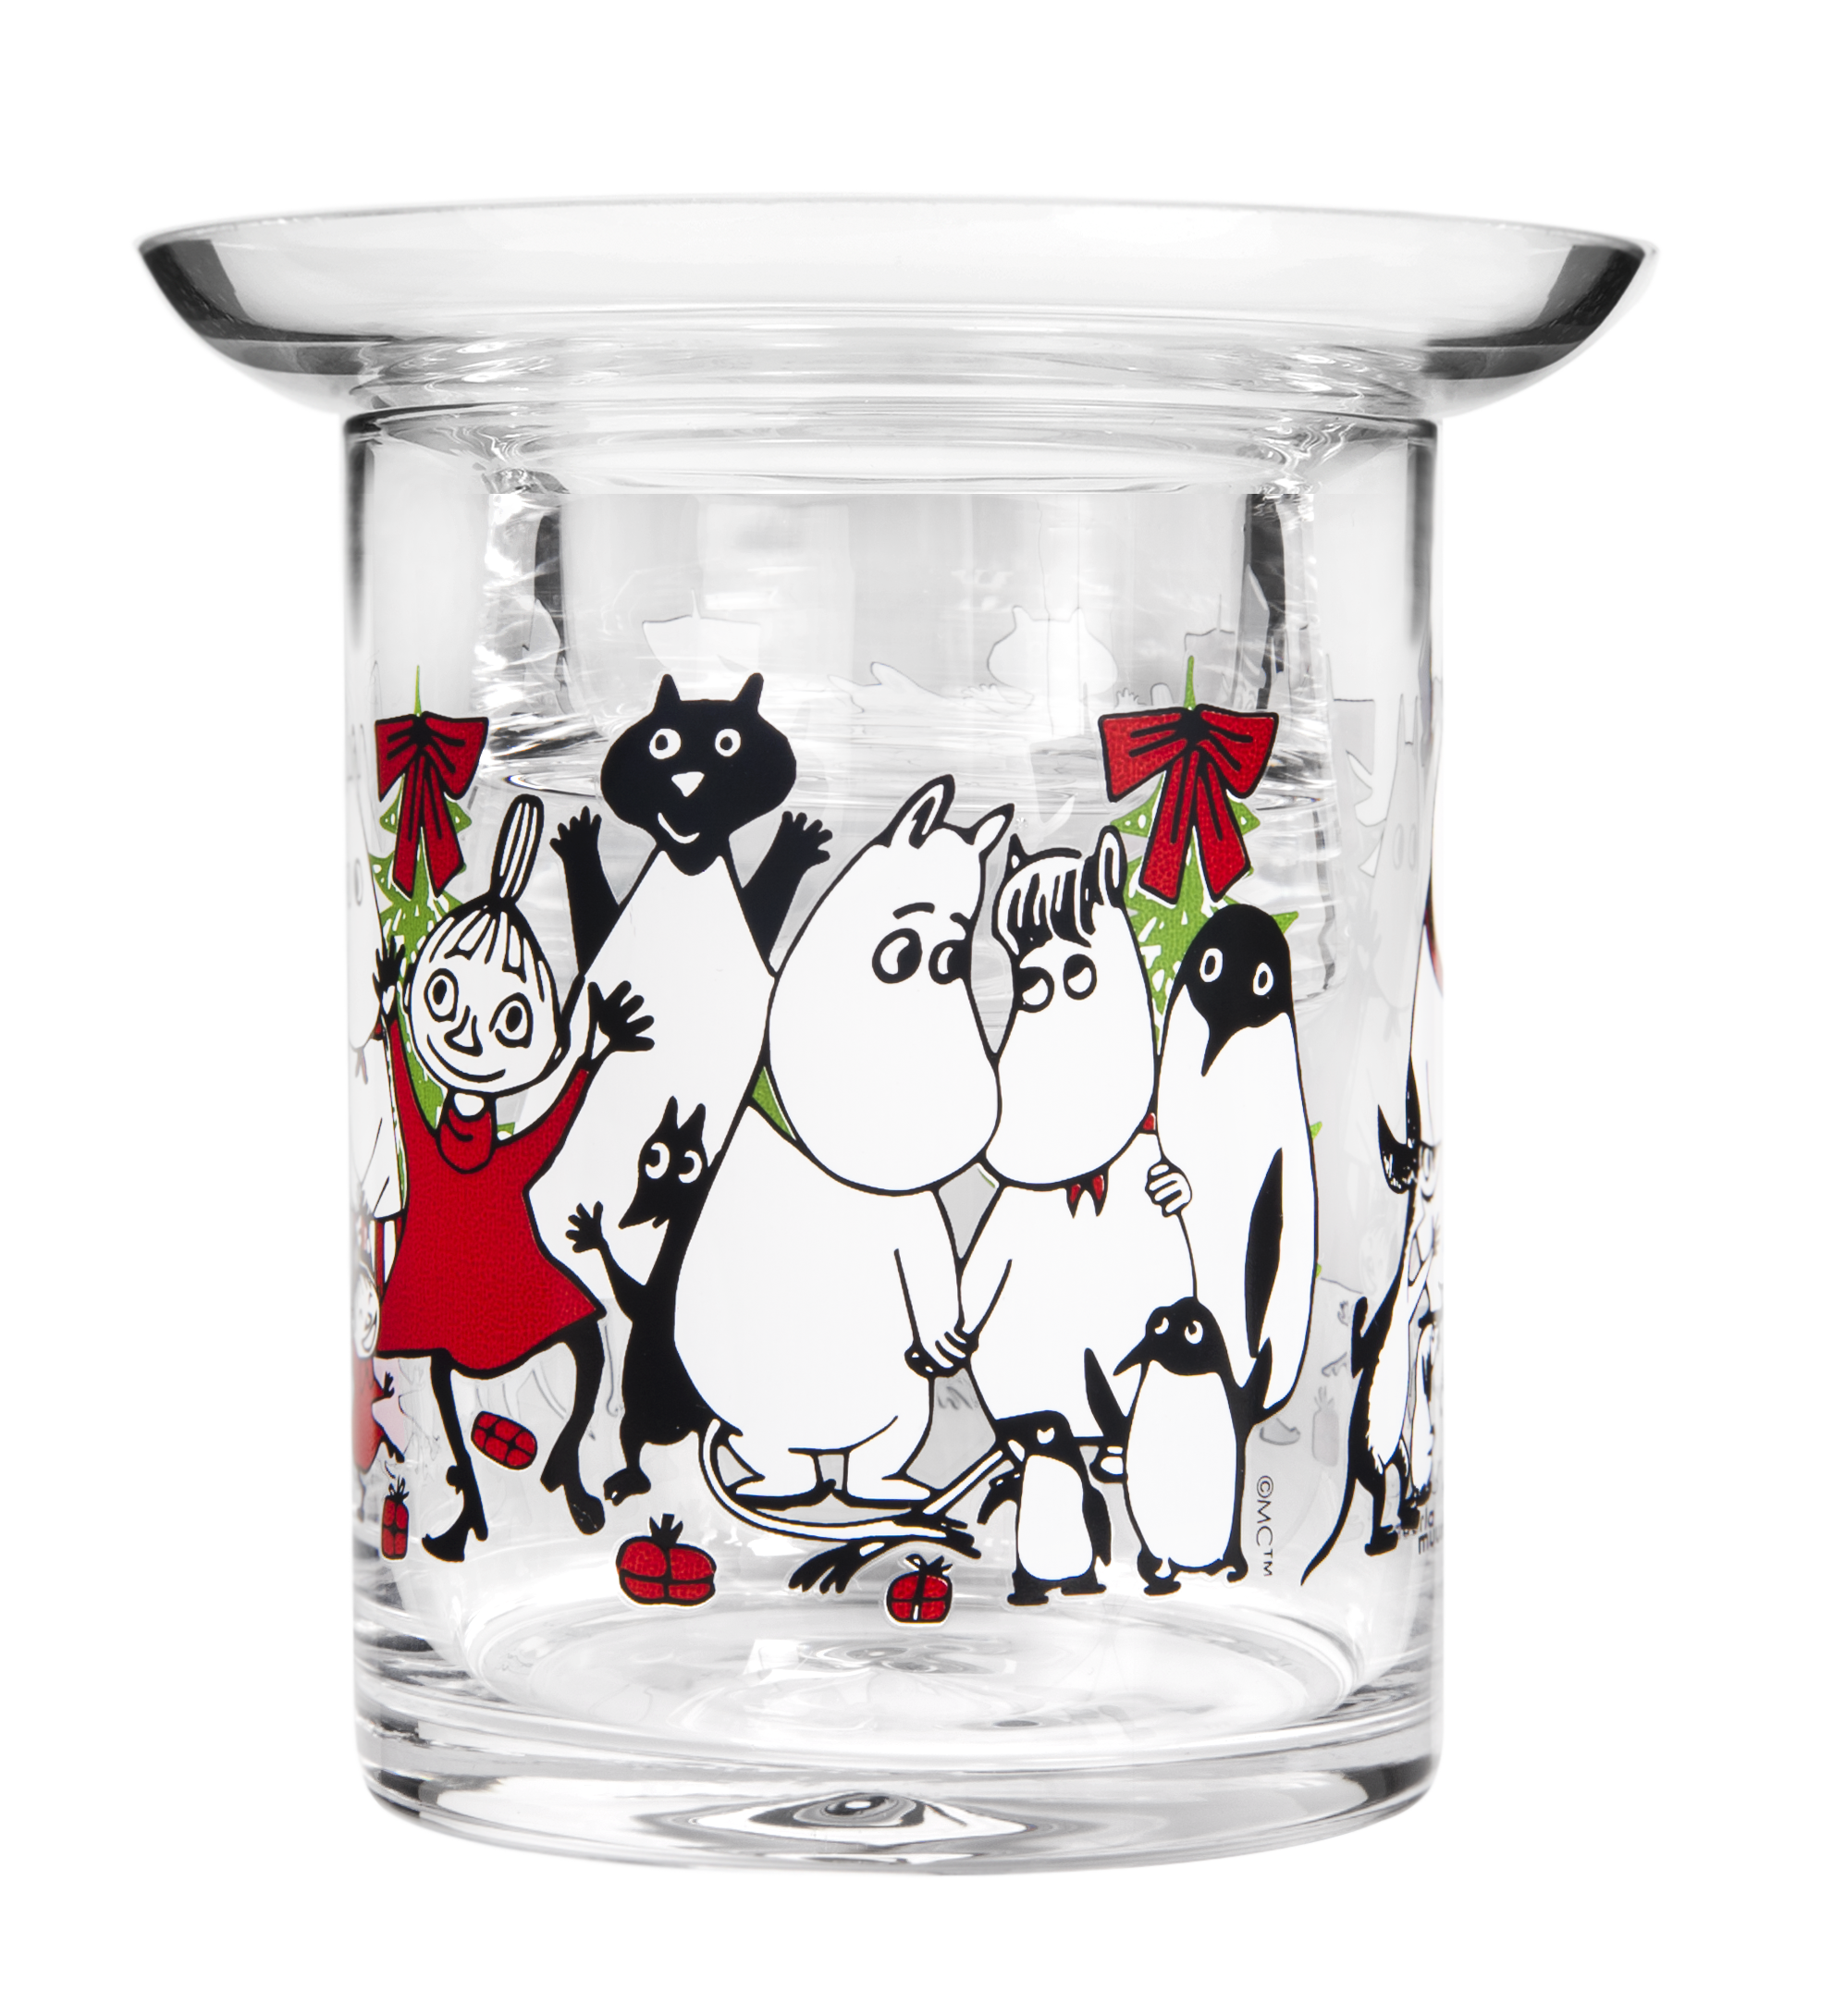 Muurla Moomin Winter Magic tealight holder 10 cm